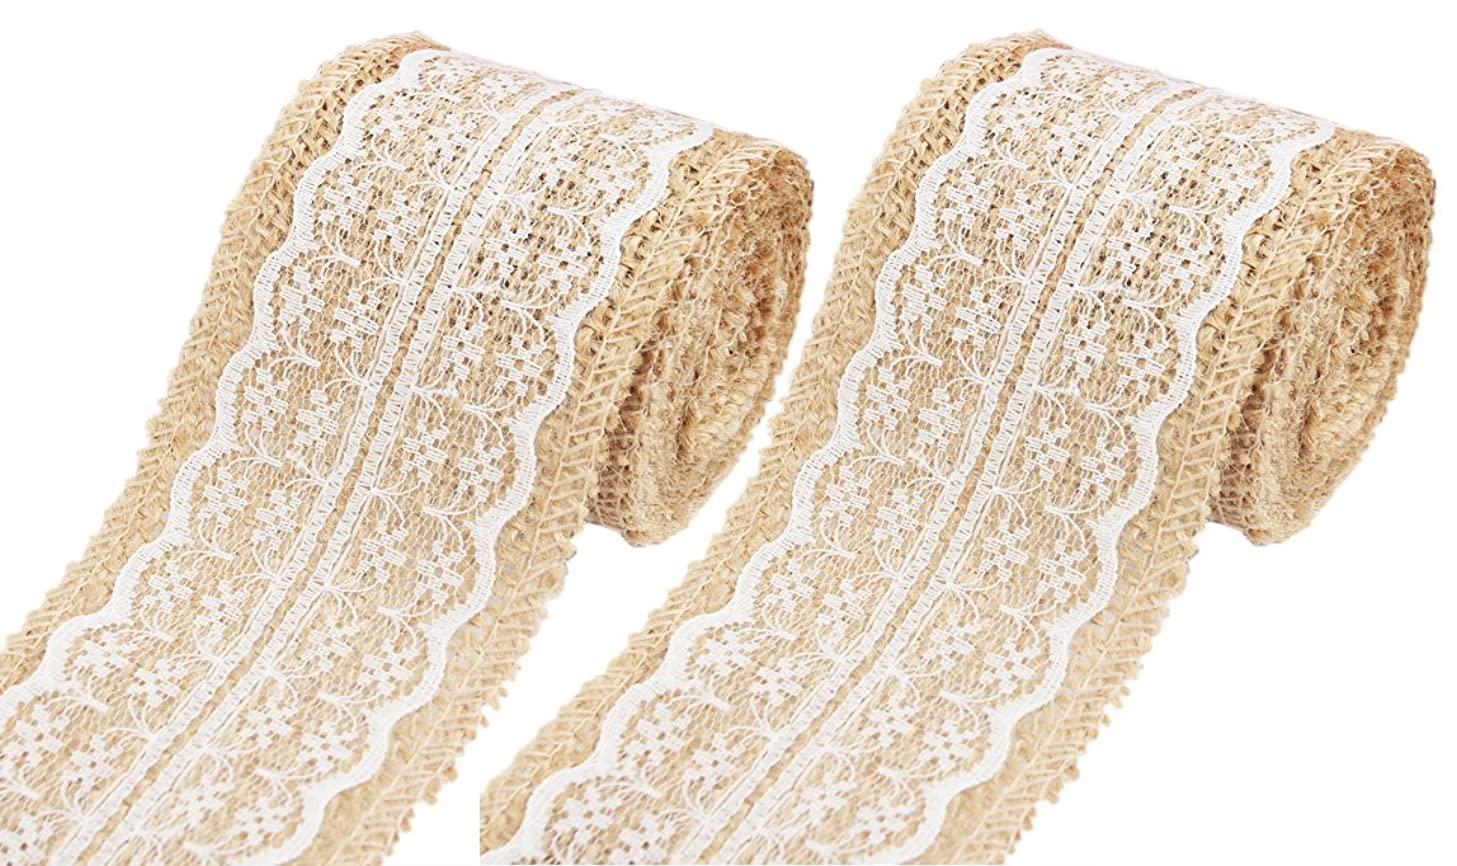 Burlap Ribbon for Crafts, Lace Ribbon, Floral Rustic Ribbon-HipGirl White Lace Trims Burlap Tape Jute Natural Ribbon, Burlap Roll with Lace-for Rustic Wedding Decorations. 156in,2.36